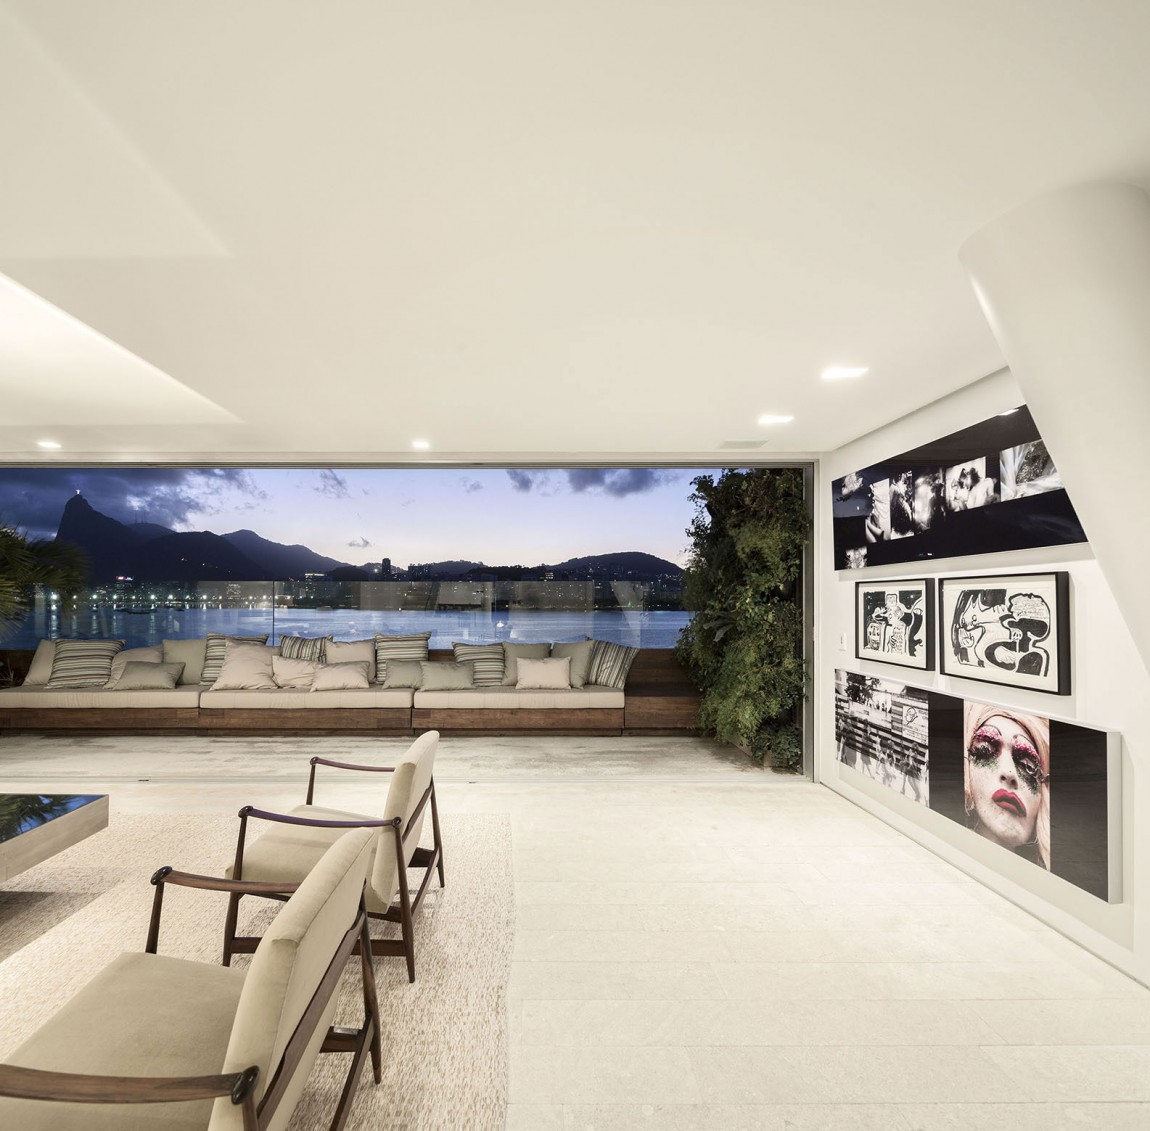 Contemporary art and plush seating add a new dimension to the room